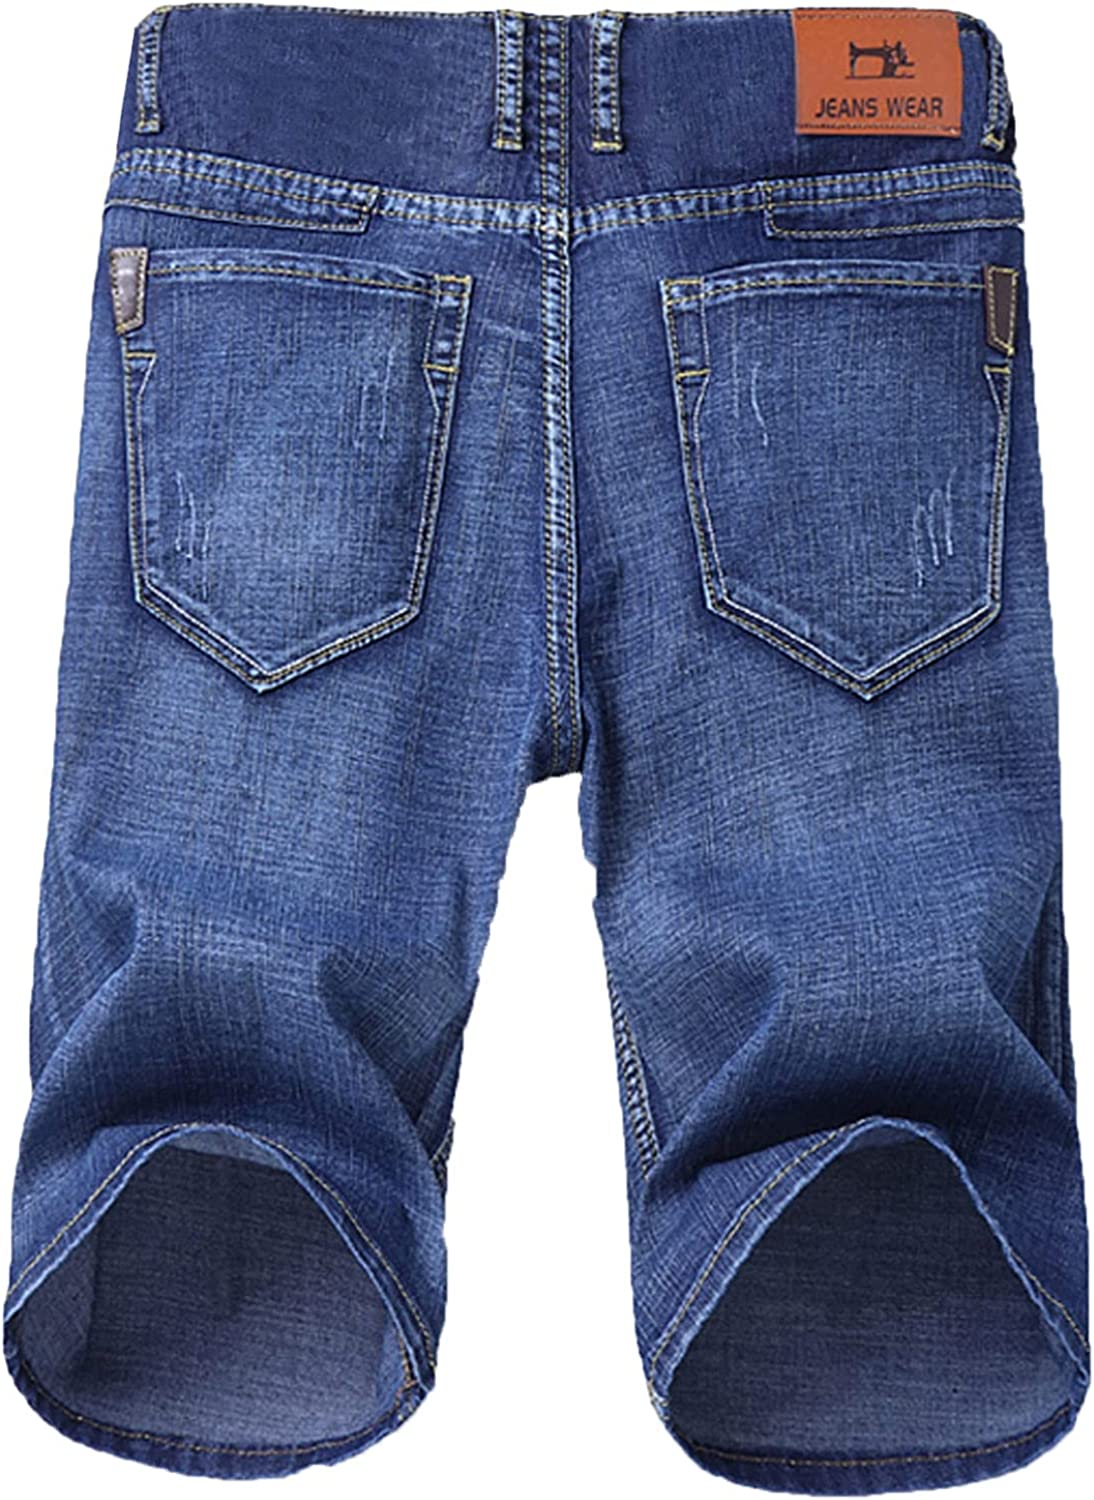 FUNEY Mens Denim Shorts Summer Vintage Washed Ripped Distressed Straight Fit Elastic Knee Length Casual Jean Shorts